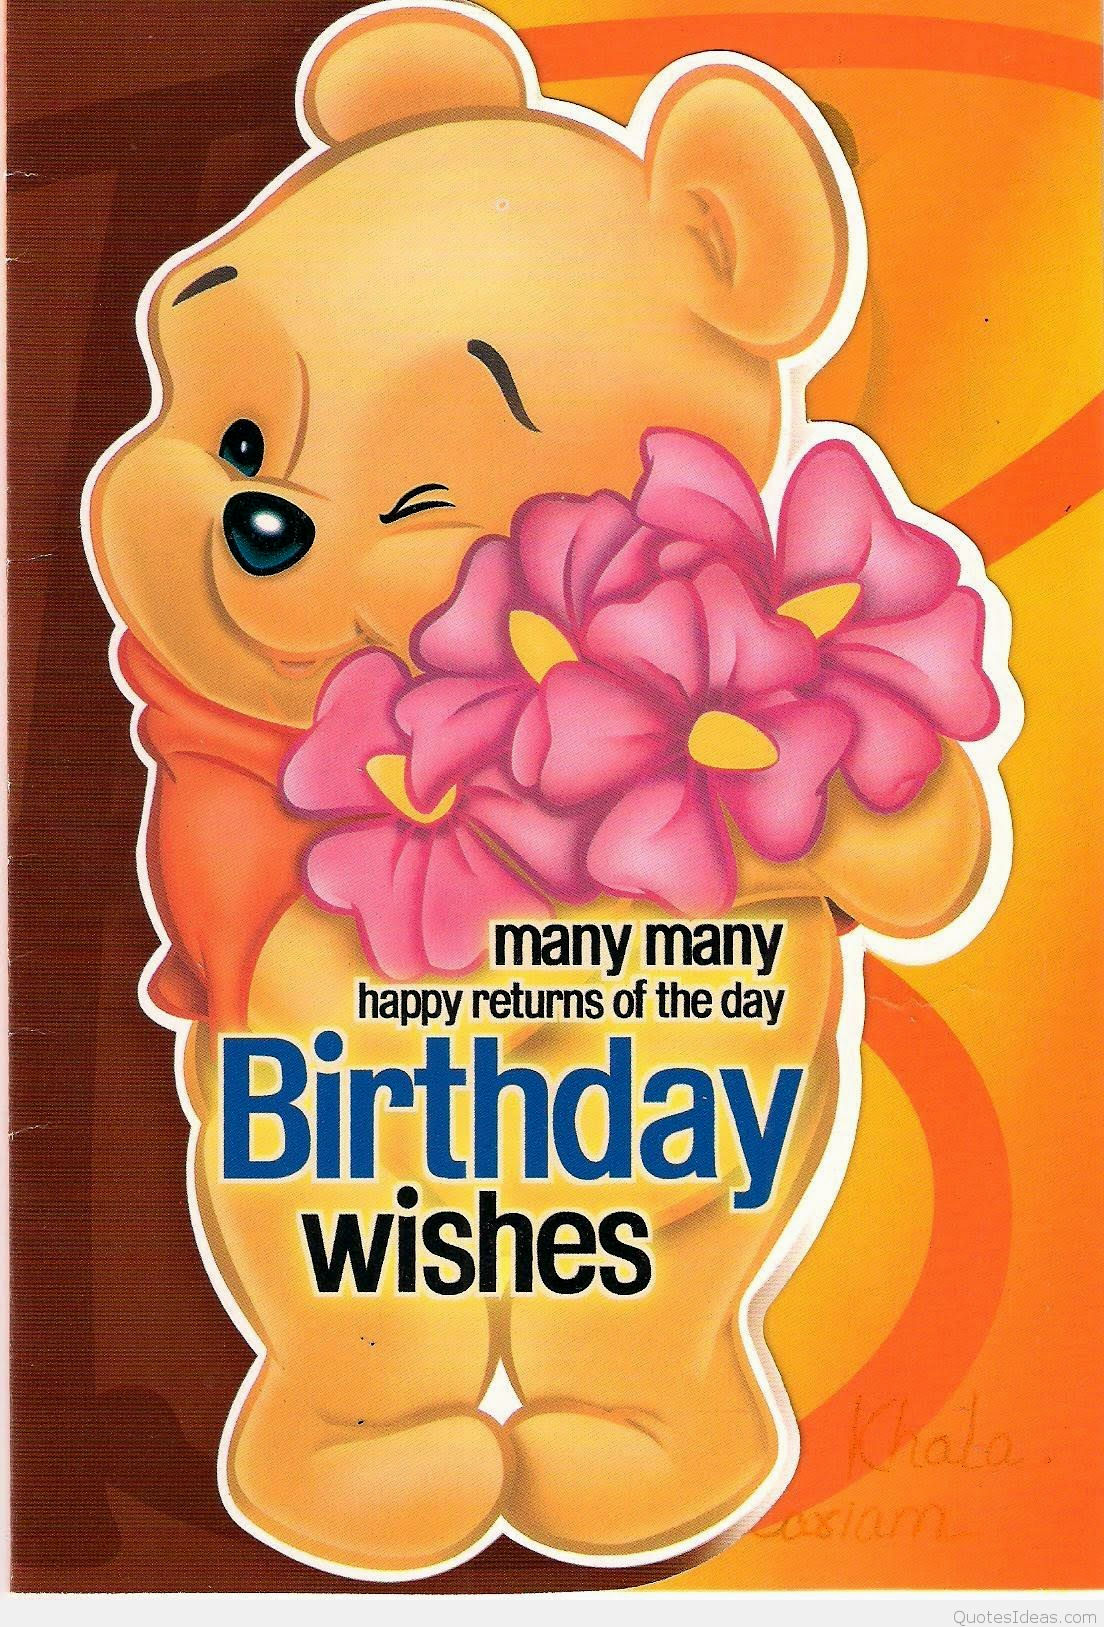 free birthday wishes images ; finest-free-birthday-wishes-for-facebook-photo-beautiful-free-birthday-wishes-for-facebook-image